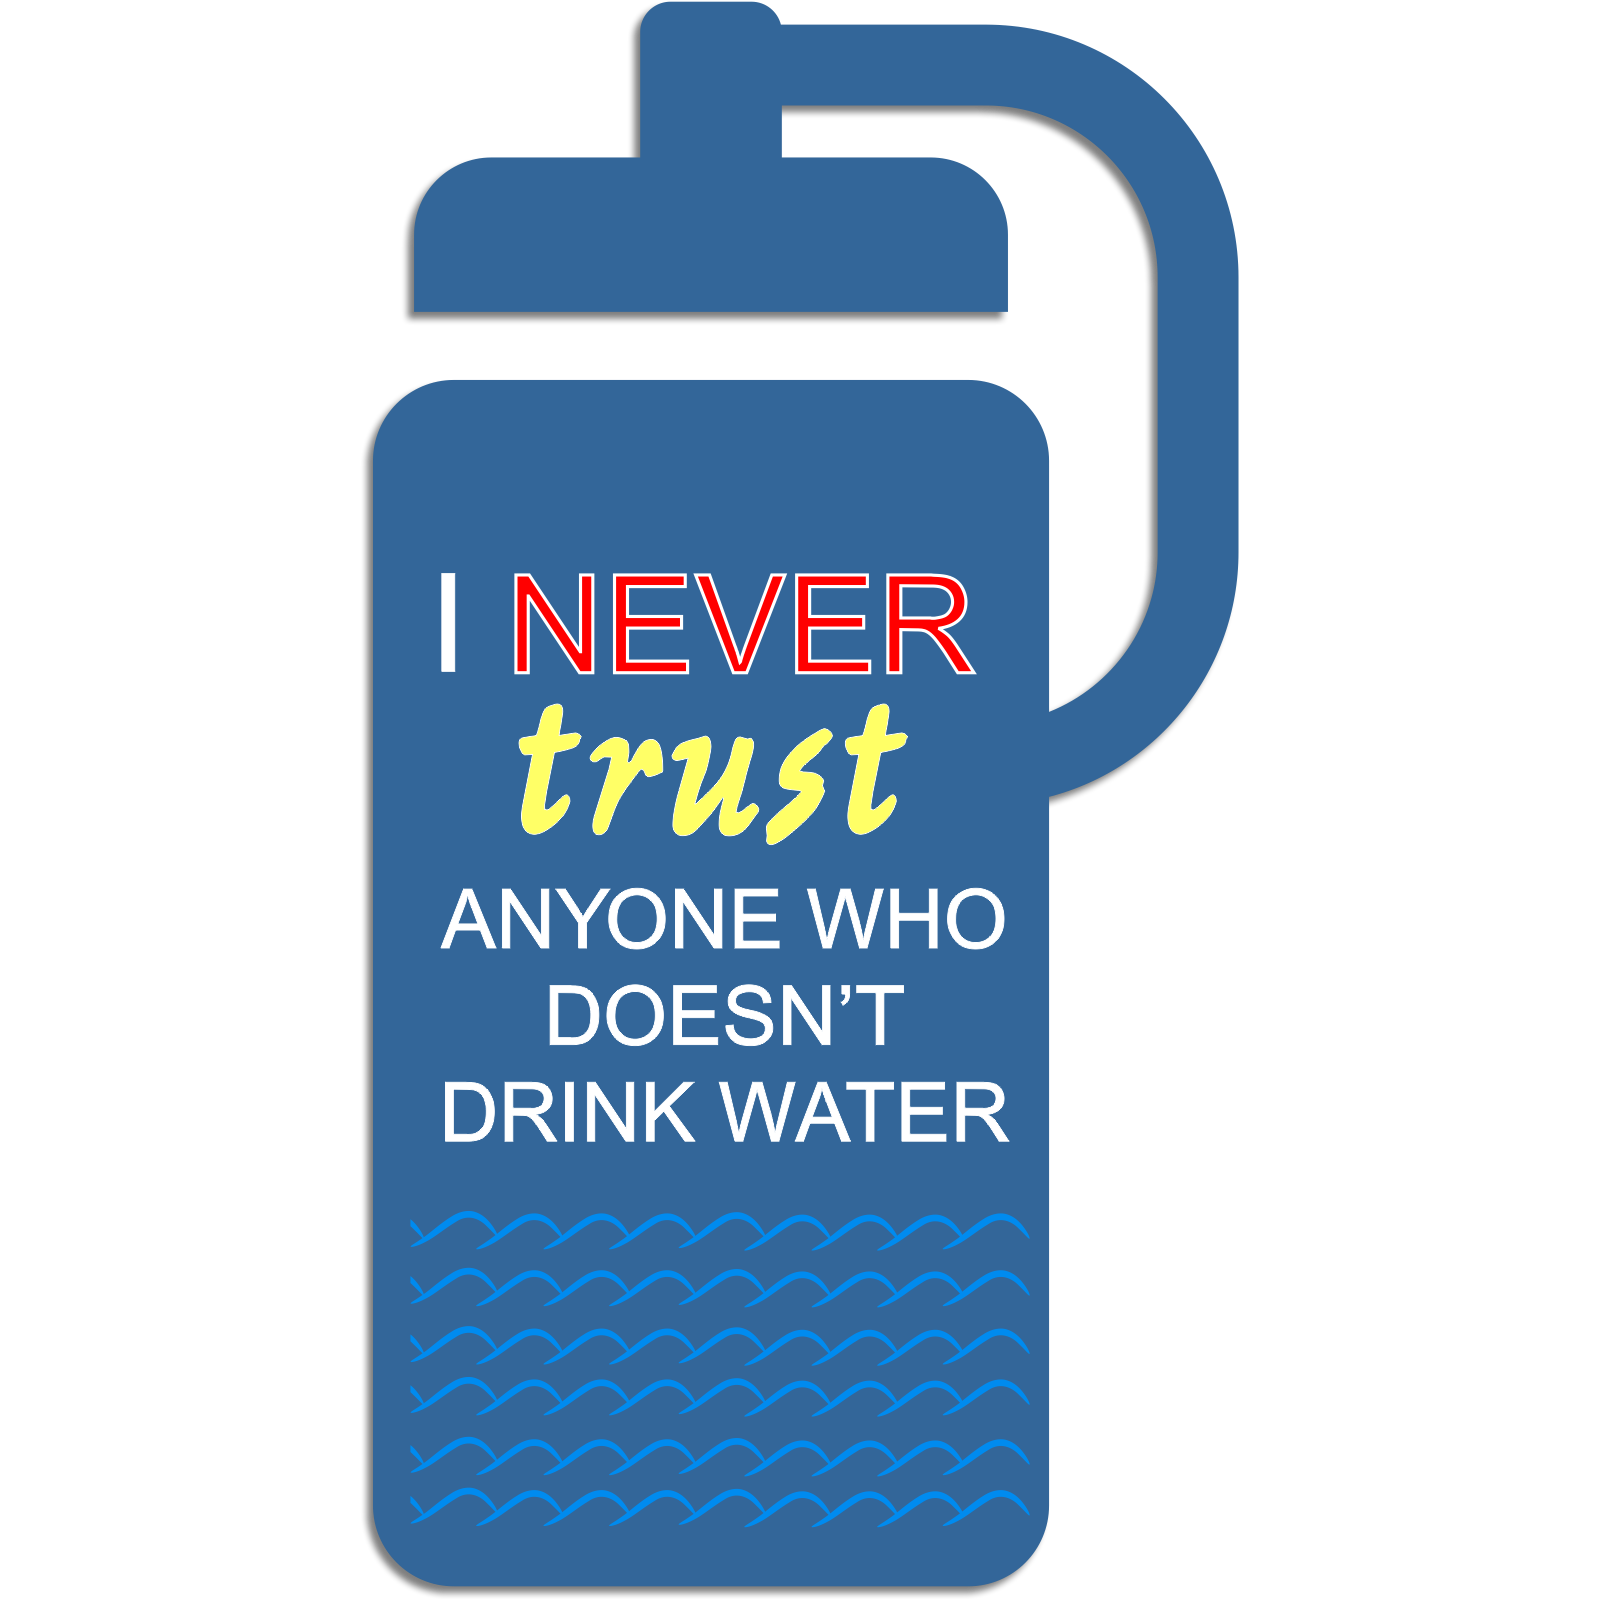 I never trust anyone who doesn't drink water